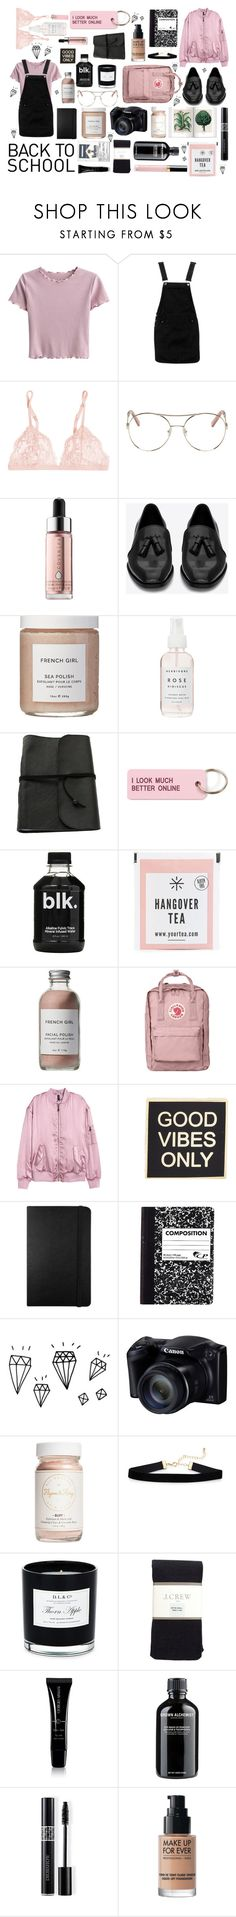 """""""Untitled #23"""" by henkeholm ❤ liked on Polyvore featuring Boohoo, La Perla, Chloé, Cover FX, Yves Saint Laurent, French Girl, Herbivore, Various Projects, Fjällräven and H&M"""